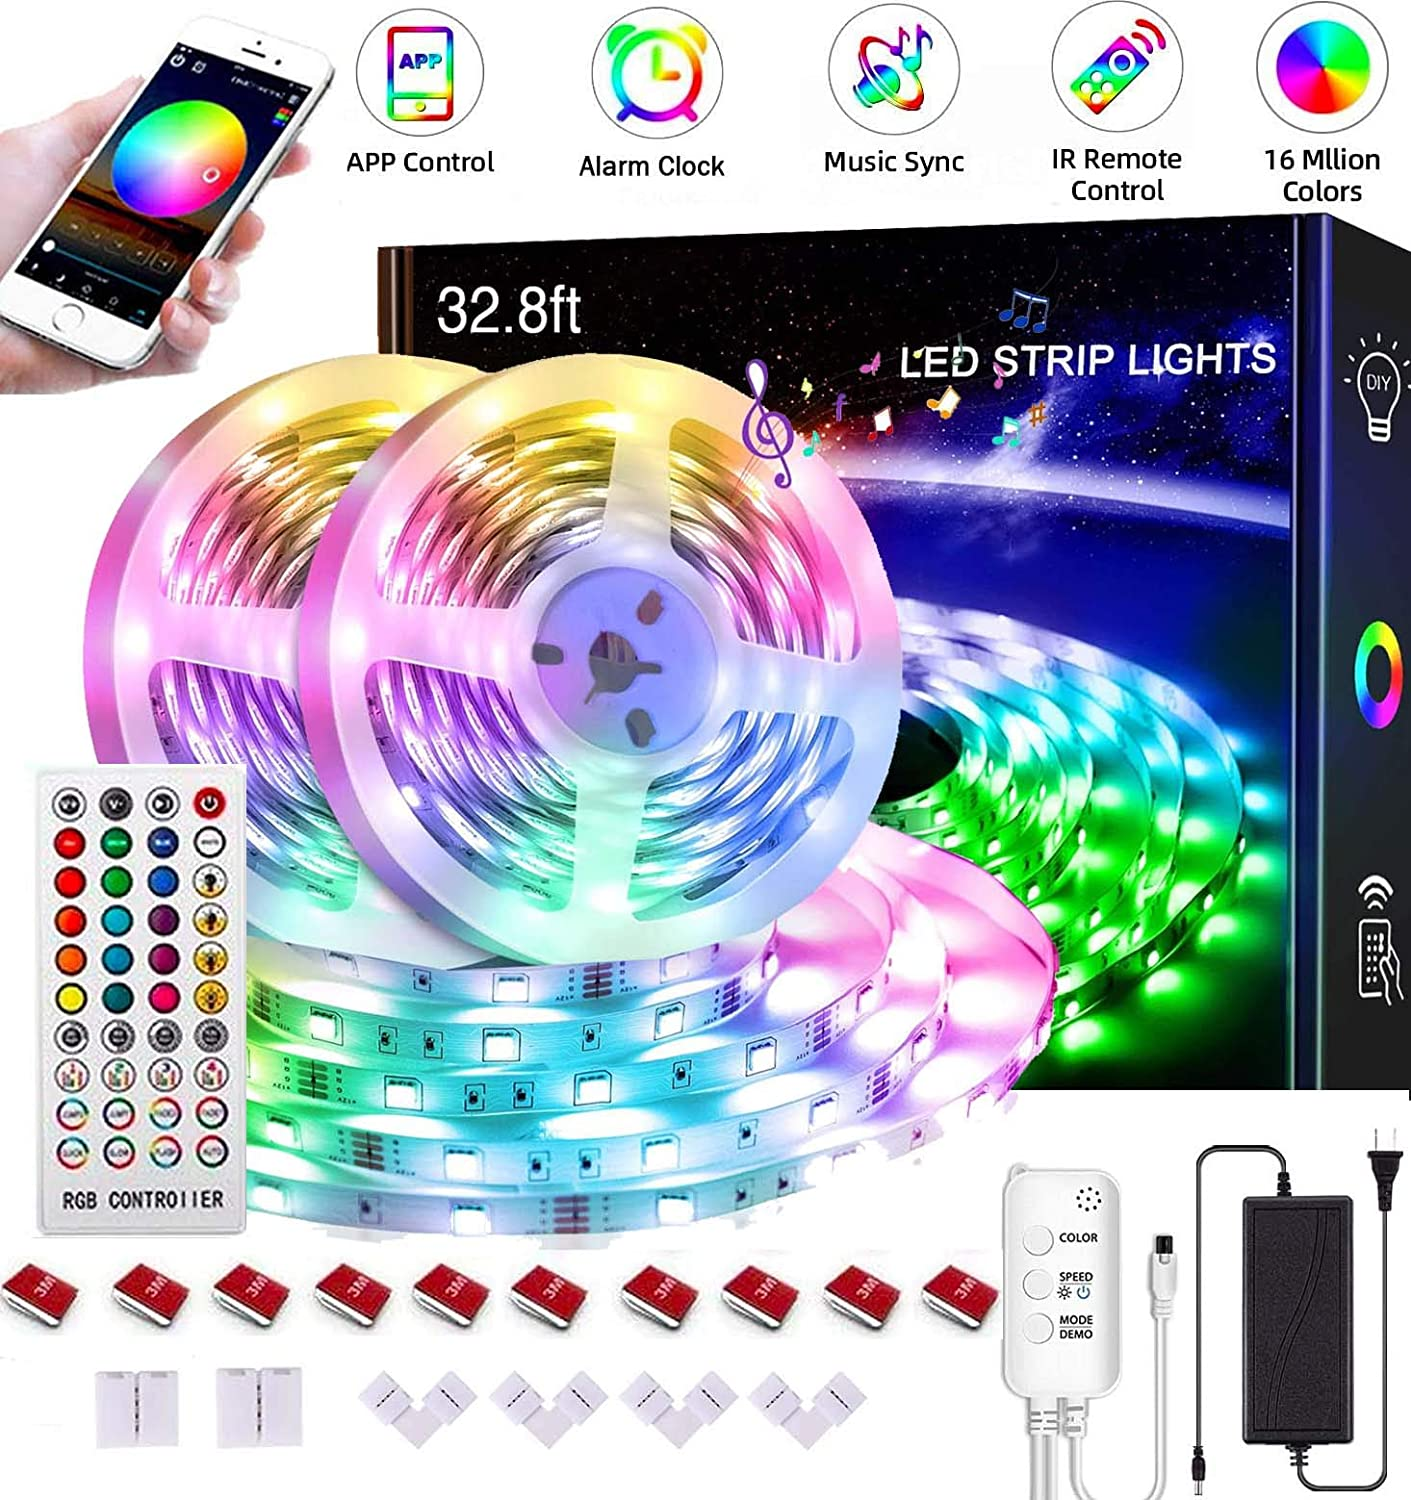 Led Strip Lights 32.8ft5050 RGB Bluetooth Ranking TOP6 favorite Light Strips with